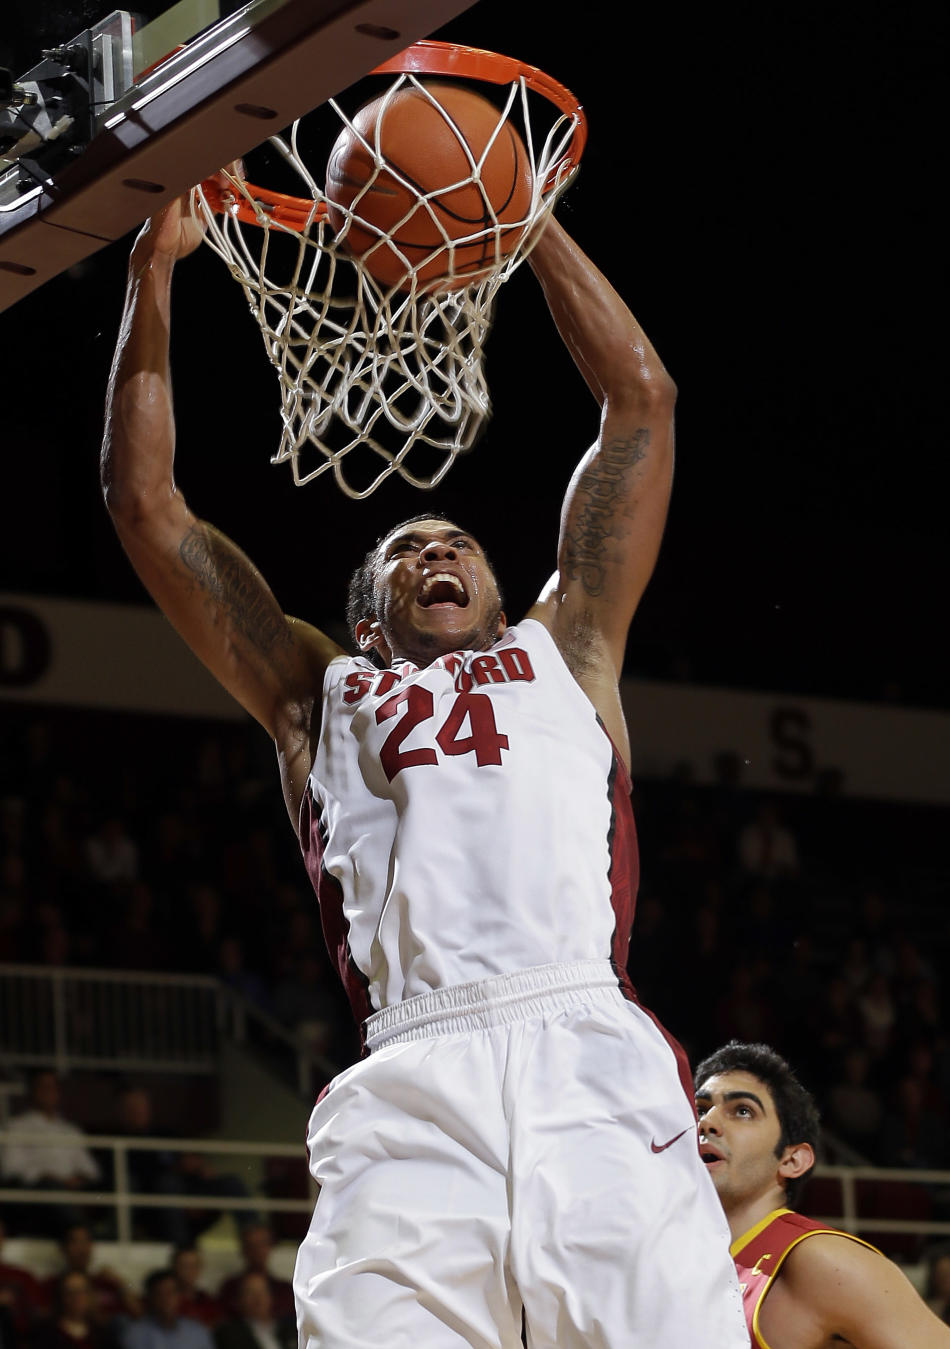 Stanford forward Josh Huestis (24) dunks against Southern California during the second half of an NCAA college basketball game on Thursday, Feb. 20, 2014, in Stanford, Calif. (AP Photo/Marcio Jose San